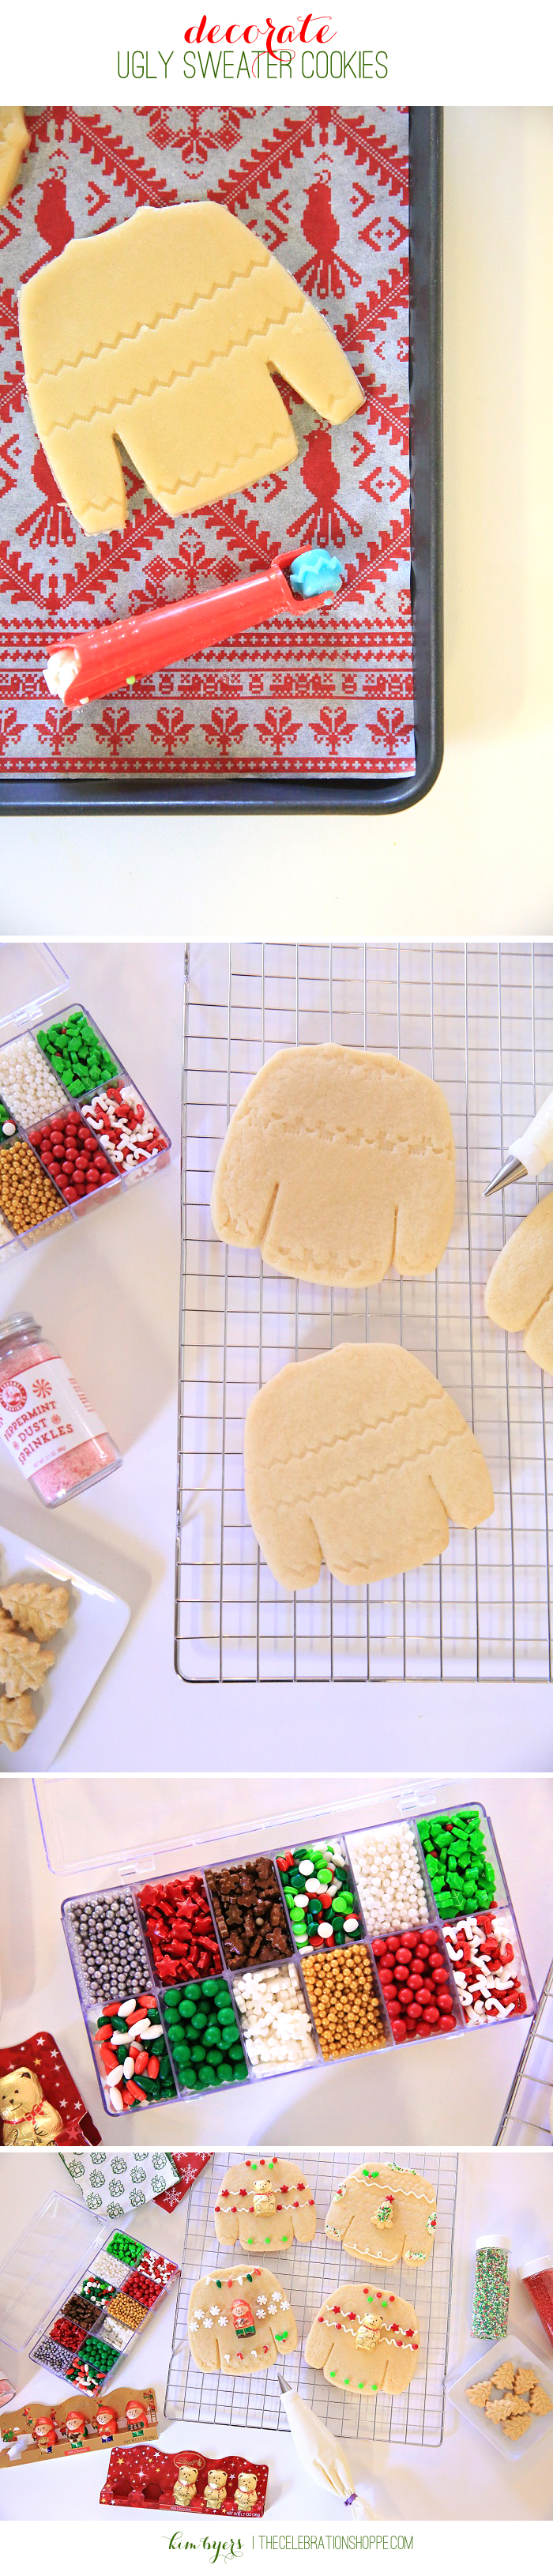 Decorate Ugly Sweater Cookies | Kim Byers